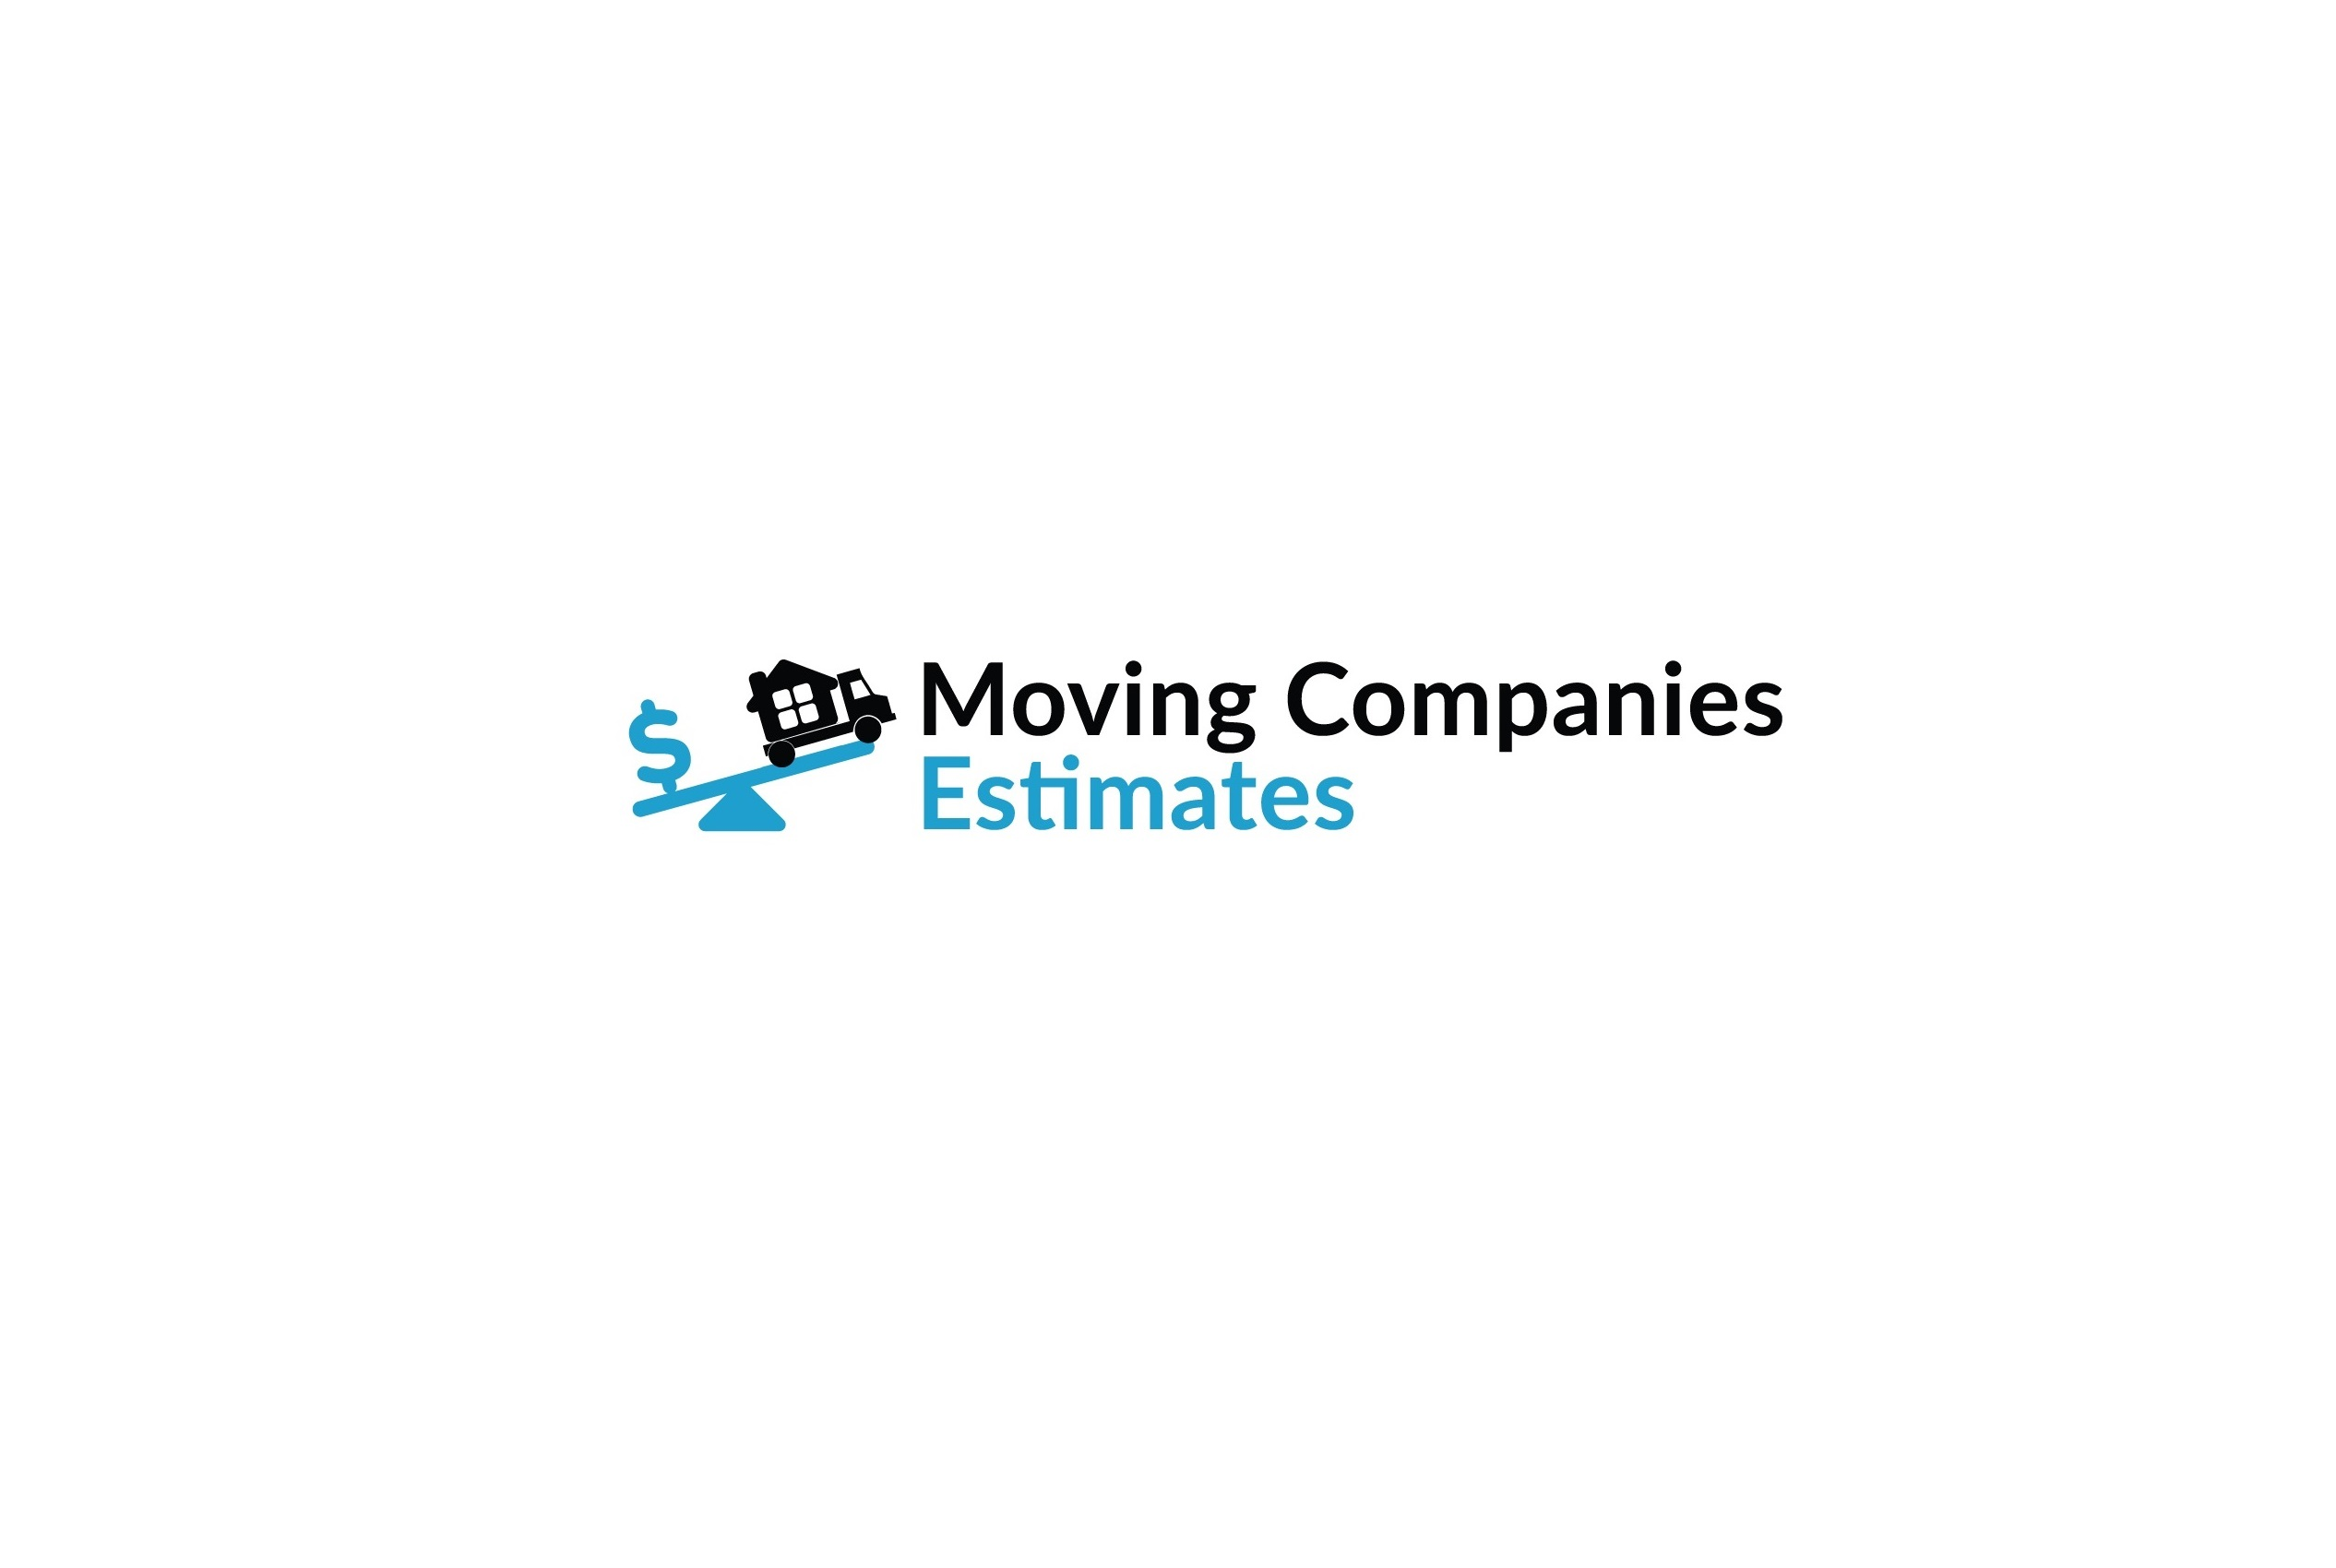 Moving Companies Estimates